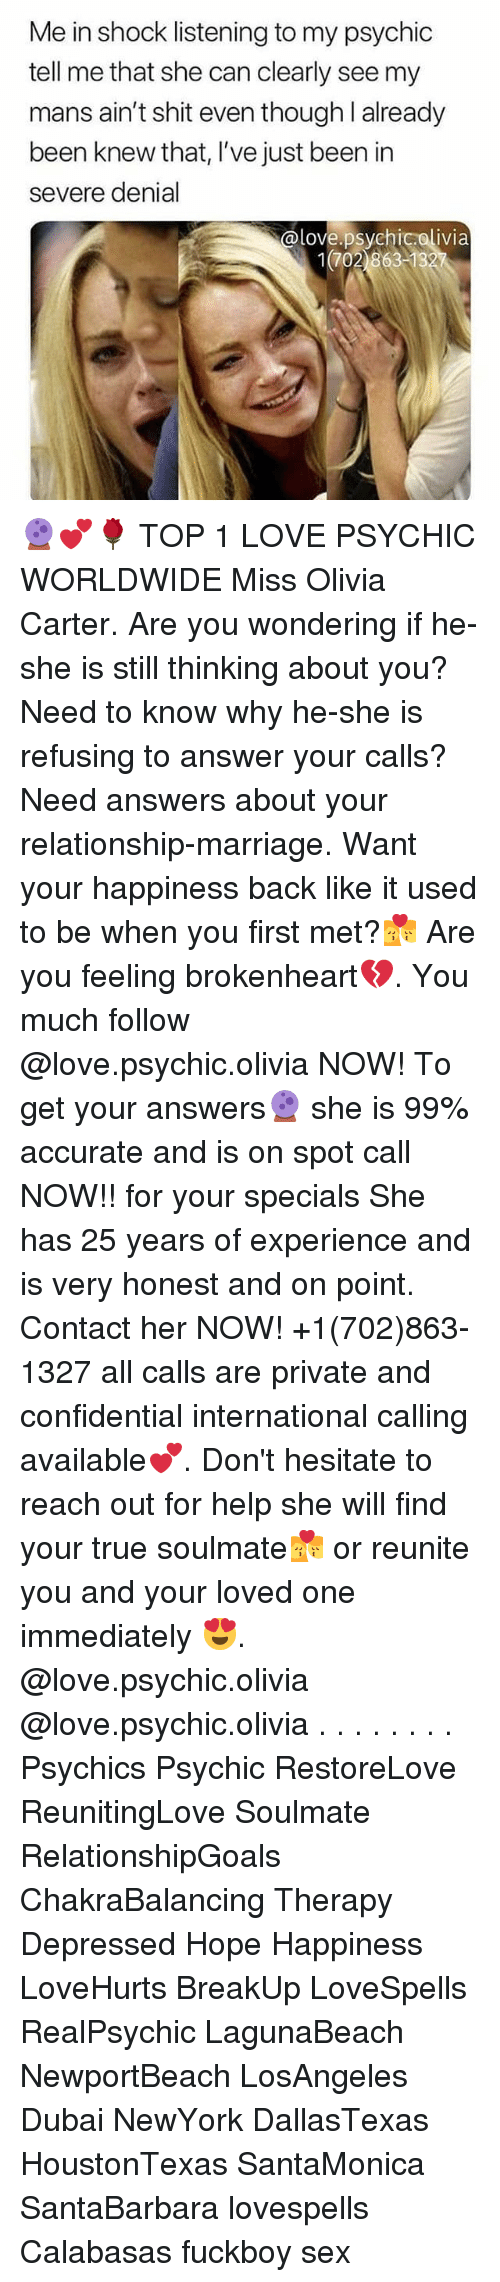 brokenheart: Me in shock listening to my psychic  tell me that she can clearly see my  mans ain't shit even though l already  been knew that, I've just been in  severe denial  @love.psychicolivia  1702 86313 🔮💕🌹 TOP 1 LOVE PSYCHIC WORLDWIDE Miss Olivia Carter. Are you wondering if he-she is still thinking about you? Need to know why he-she is refusing to answer your calls? Need answers about your relationship-marriage. Want your happiness back like it used to be when you first met?💏 Are you feeling brokenheart💔. You much follow @love.psychic.olivia NOW! To get your answers🔮 she is 99% accurate and is on spot call NOW!! for your specials She has 25 years of experience and is very honest and on point. Contact her NOW! +1(702)863-1327 all calls are private and confidential international calling available💕. Don't hesitate to reach out for help she will find your true soulmate💏 or reunite you and your loved one immediately 😍. @love.psychic.olivia @love.psychic.olivia . . . . . . . . Psychics Psychic RestoreLove ReunitingLove Soulmate RelationshipGoals ChakraBalancing Therapy Depressed Hope Happiness LoveHurts BreakUp LoveSpells RealPsychic LagunaBeach NewportBeach LosAngeles Dubai NewYork DallasTexas HoustonTexas SantaMonica SantaBarbara lovespells Calabasas fuckboy sex